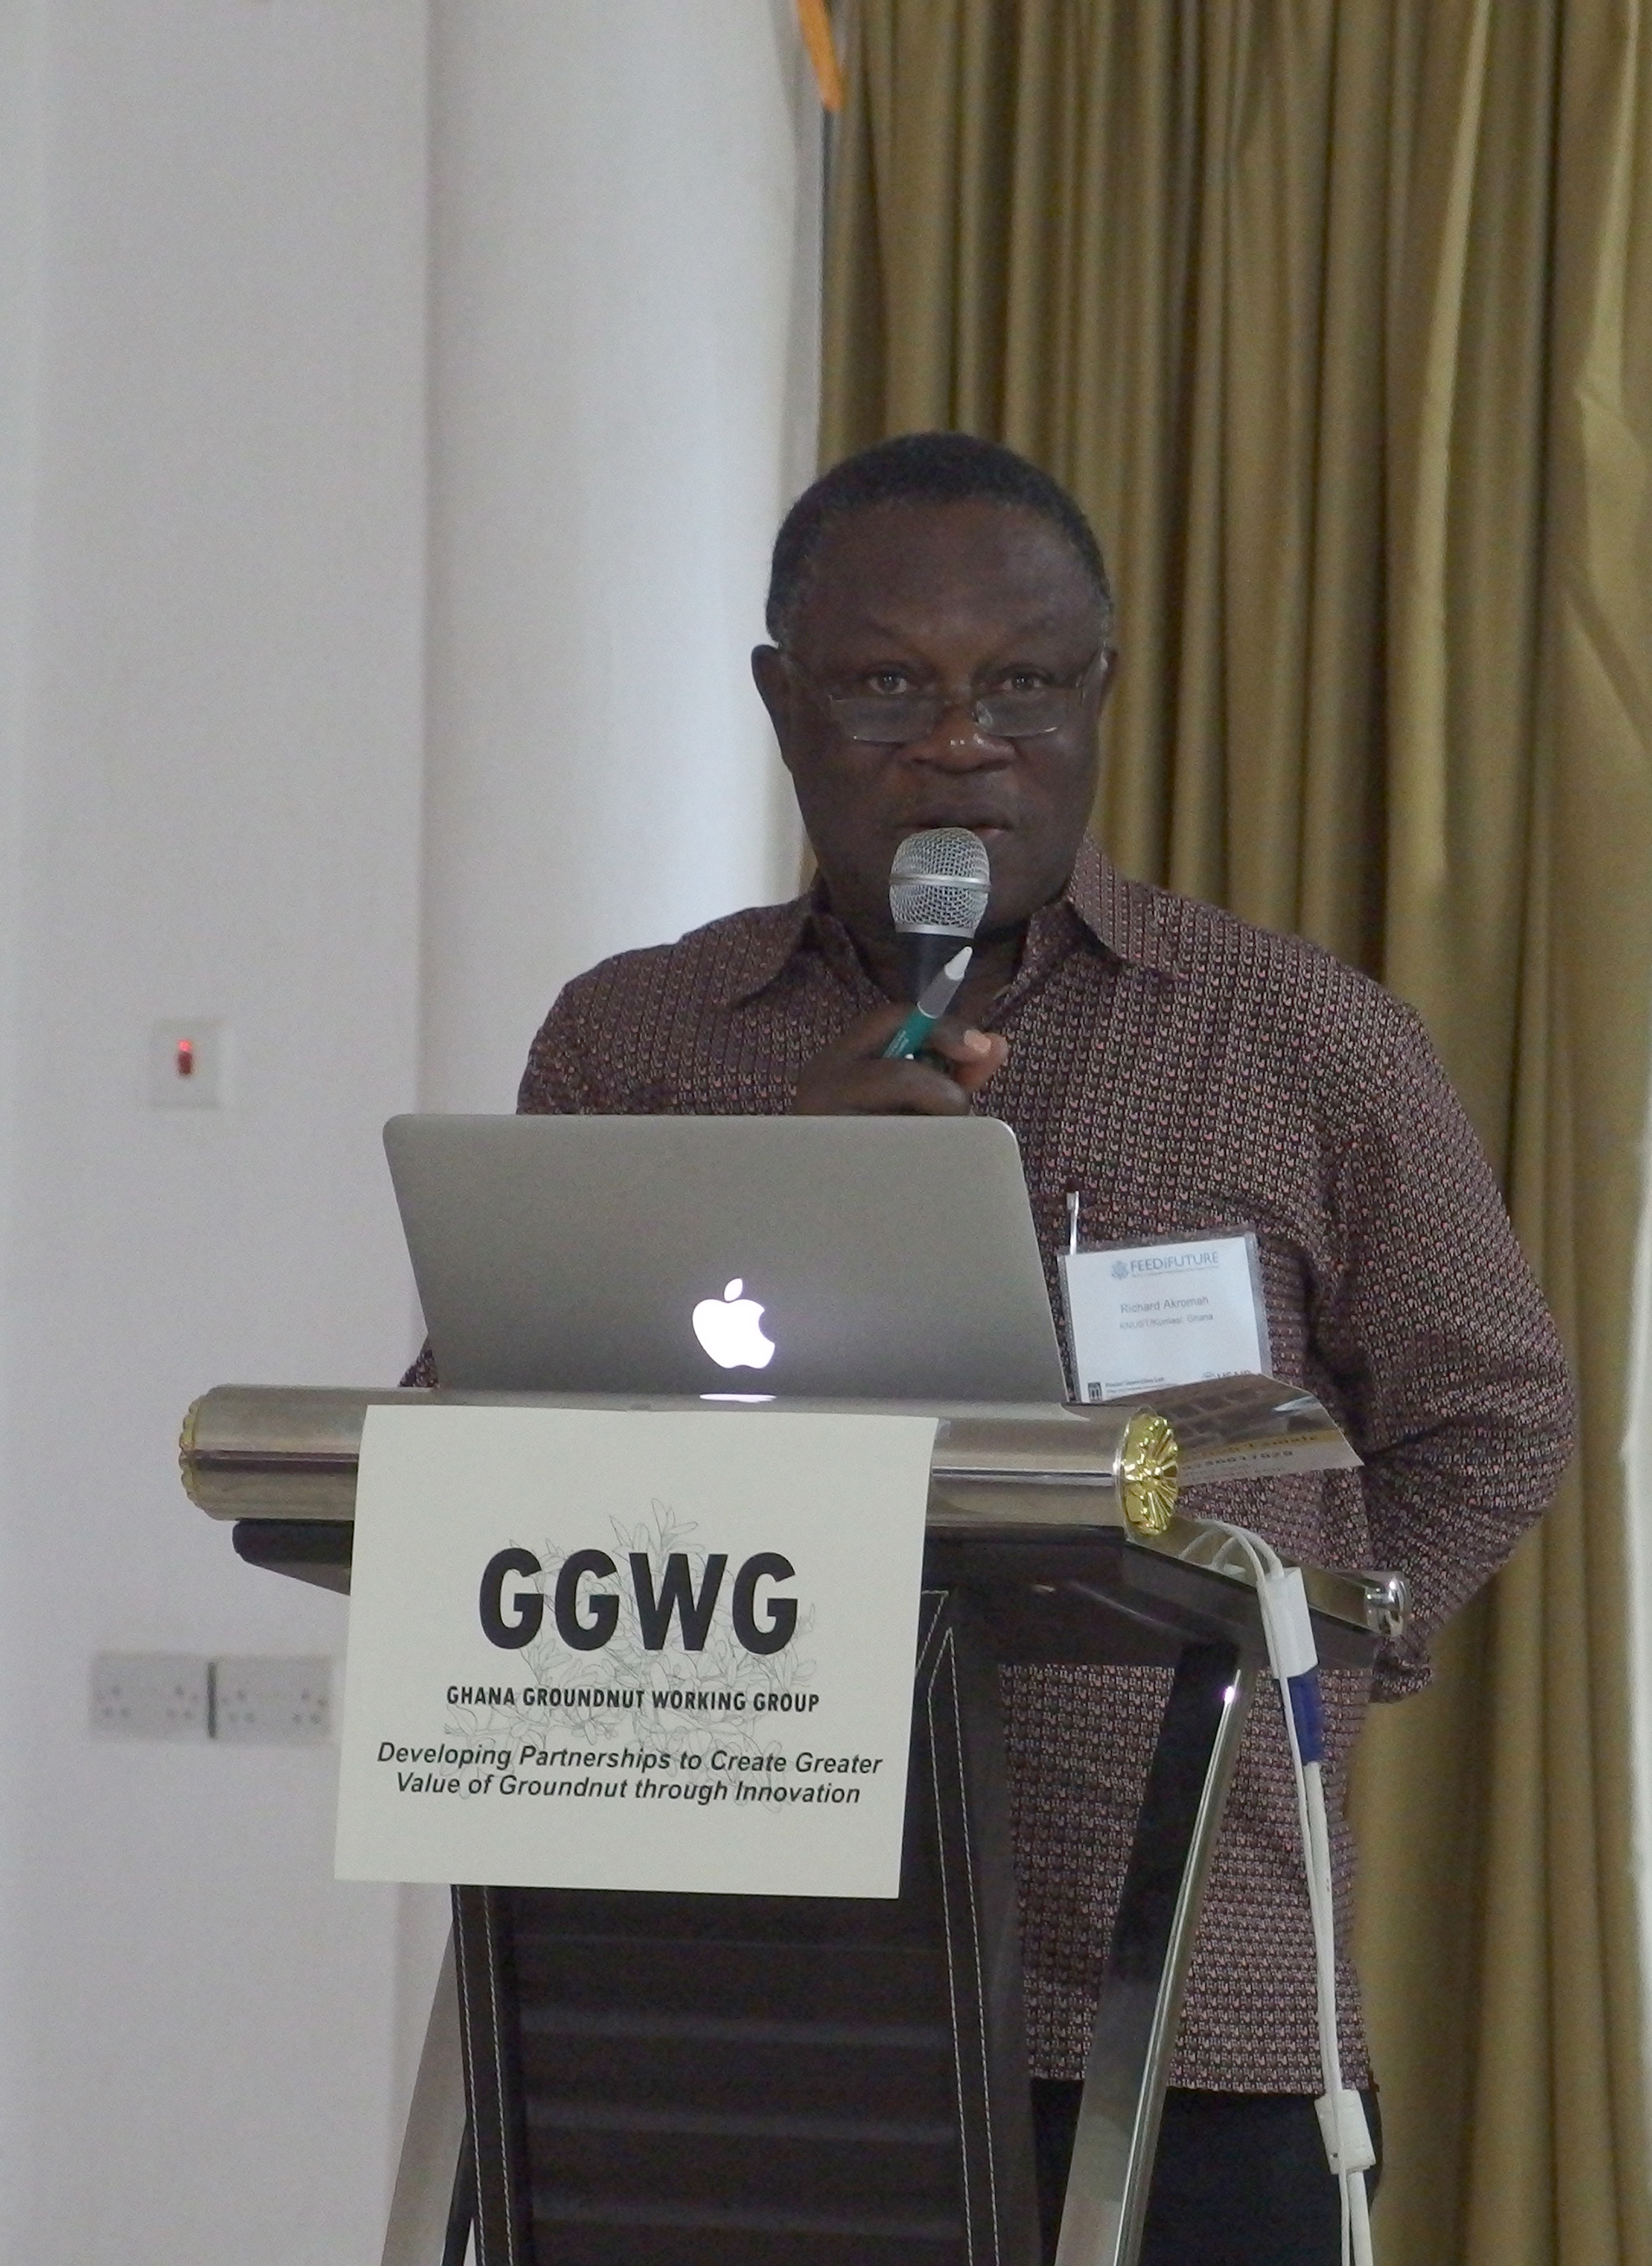 Richard Akromah, a professor at professor at Kwame Nkrumah University of Science and Technology, speaks at the inaugural meeting of the Ghana Groundnut Working Group, a new organization that aims to improve peanut farming, marketing and nutrition in the West African country by bringing together experts across the value chain. The Peanut Innovation Lab at UGA, which is a member of the American Peanut Research and Education Society, sponsored the first meeting. (Photo by Allison Floyd)